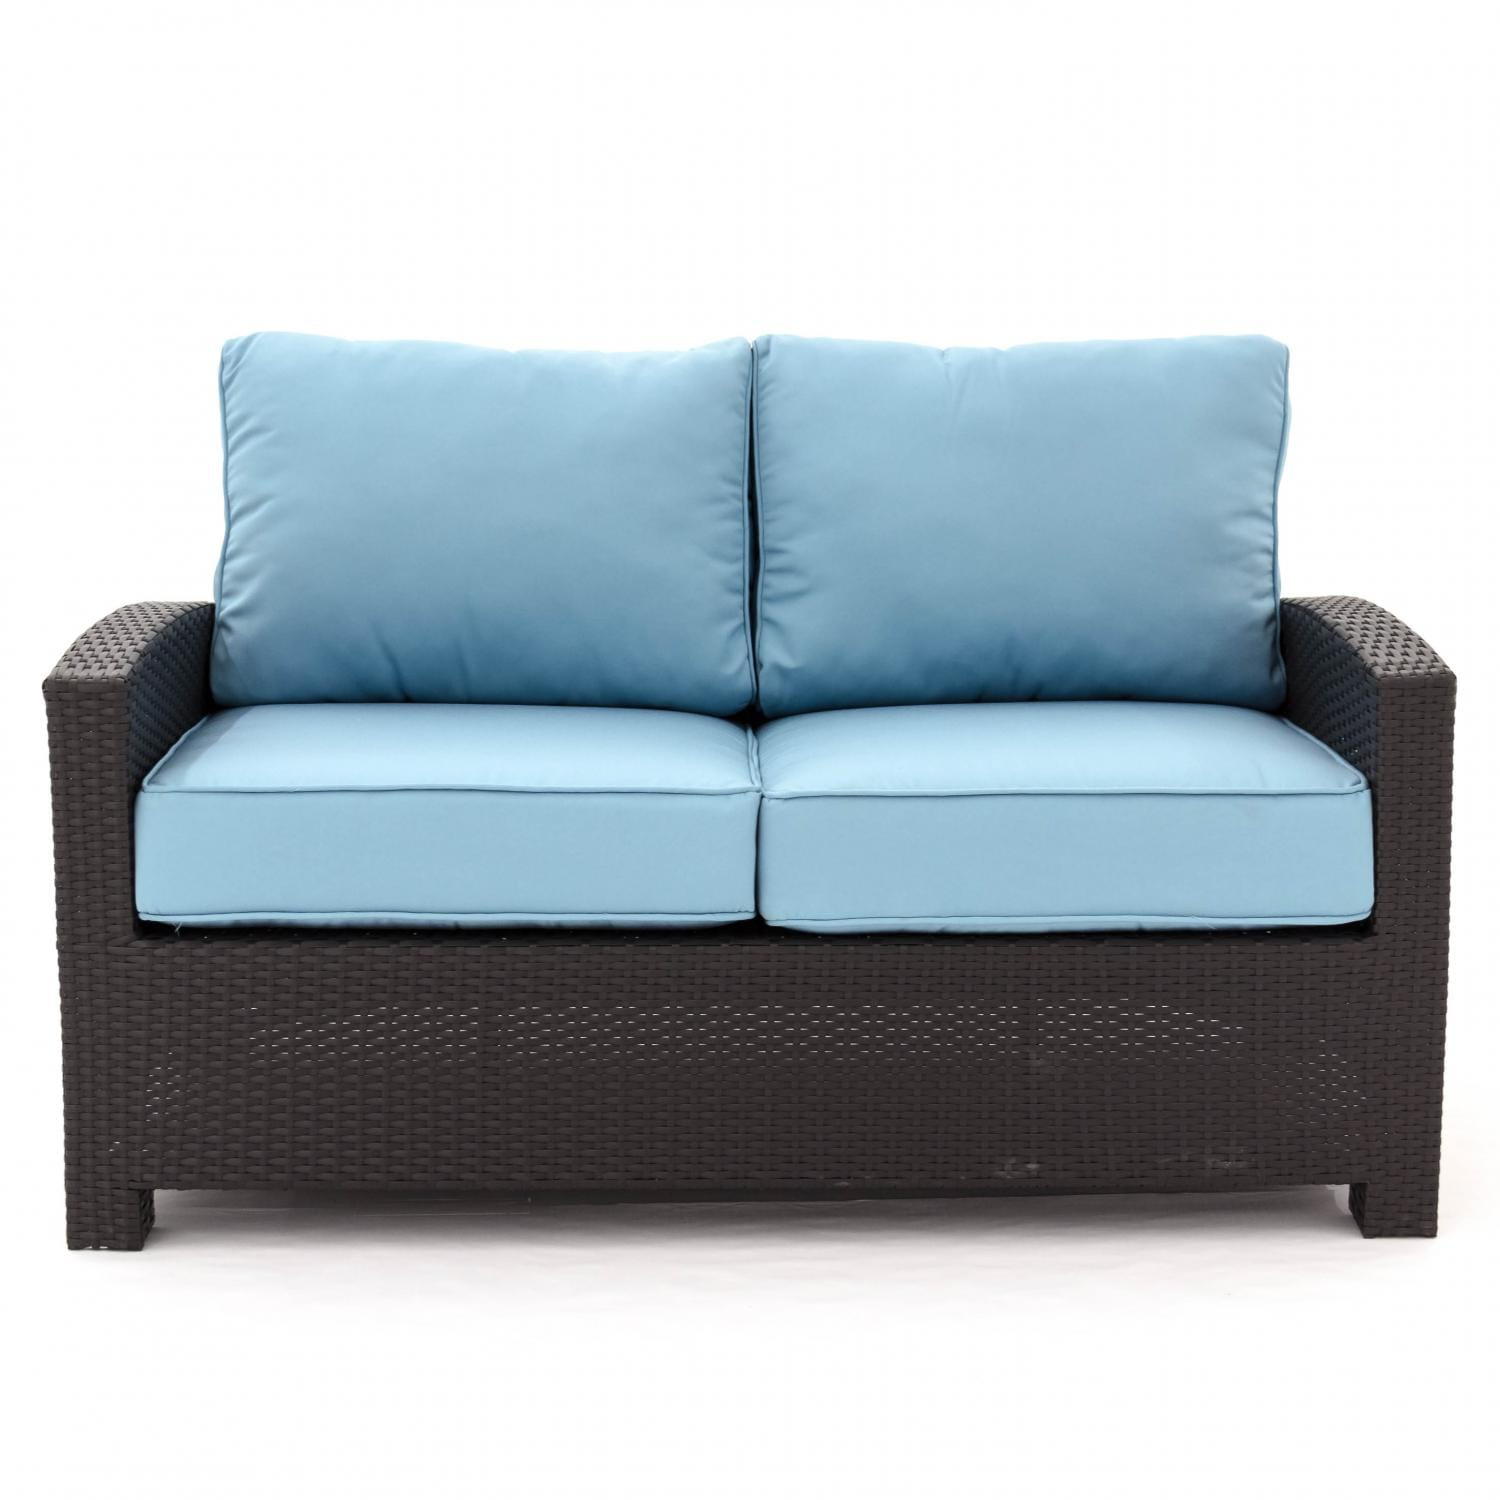 Eden Isle Resin Wicker Patio Loveseat By Lakeview Outdoor Designs Canvas Mineral Blue Bbq Guys